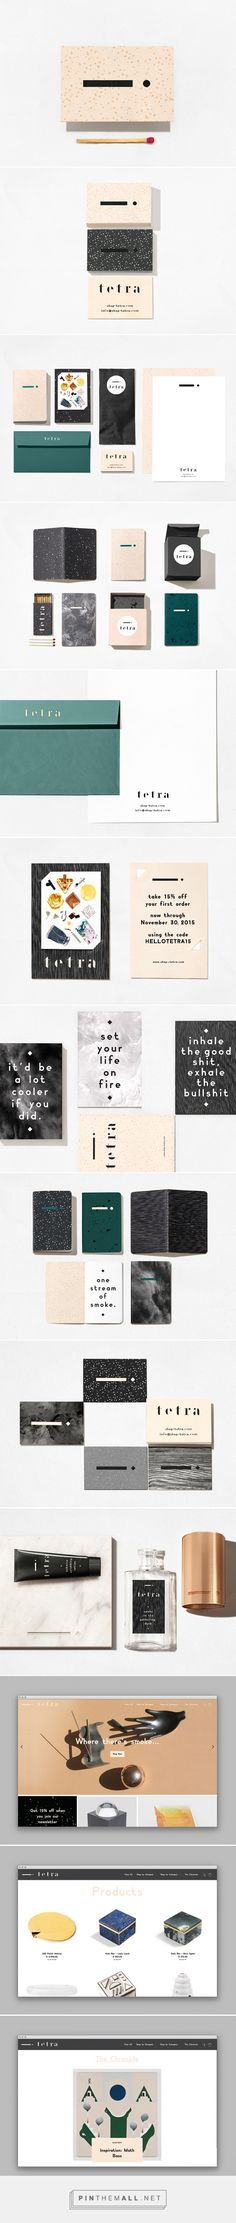 Tetra Smoke Shop Branding by Studio AH-HA | Fivestar Branding Agency – Design and Branding Agency & Curated Inspiration Gallery #branding #brand #brandidentity #design #designinspiration